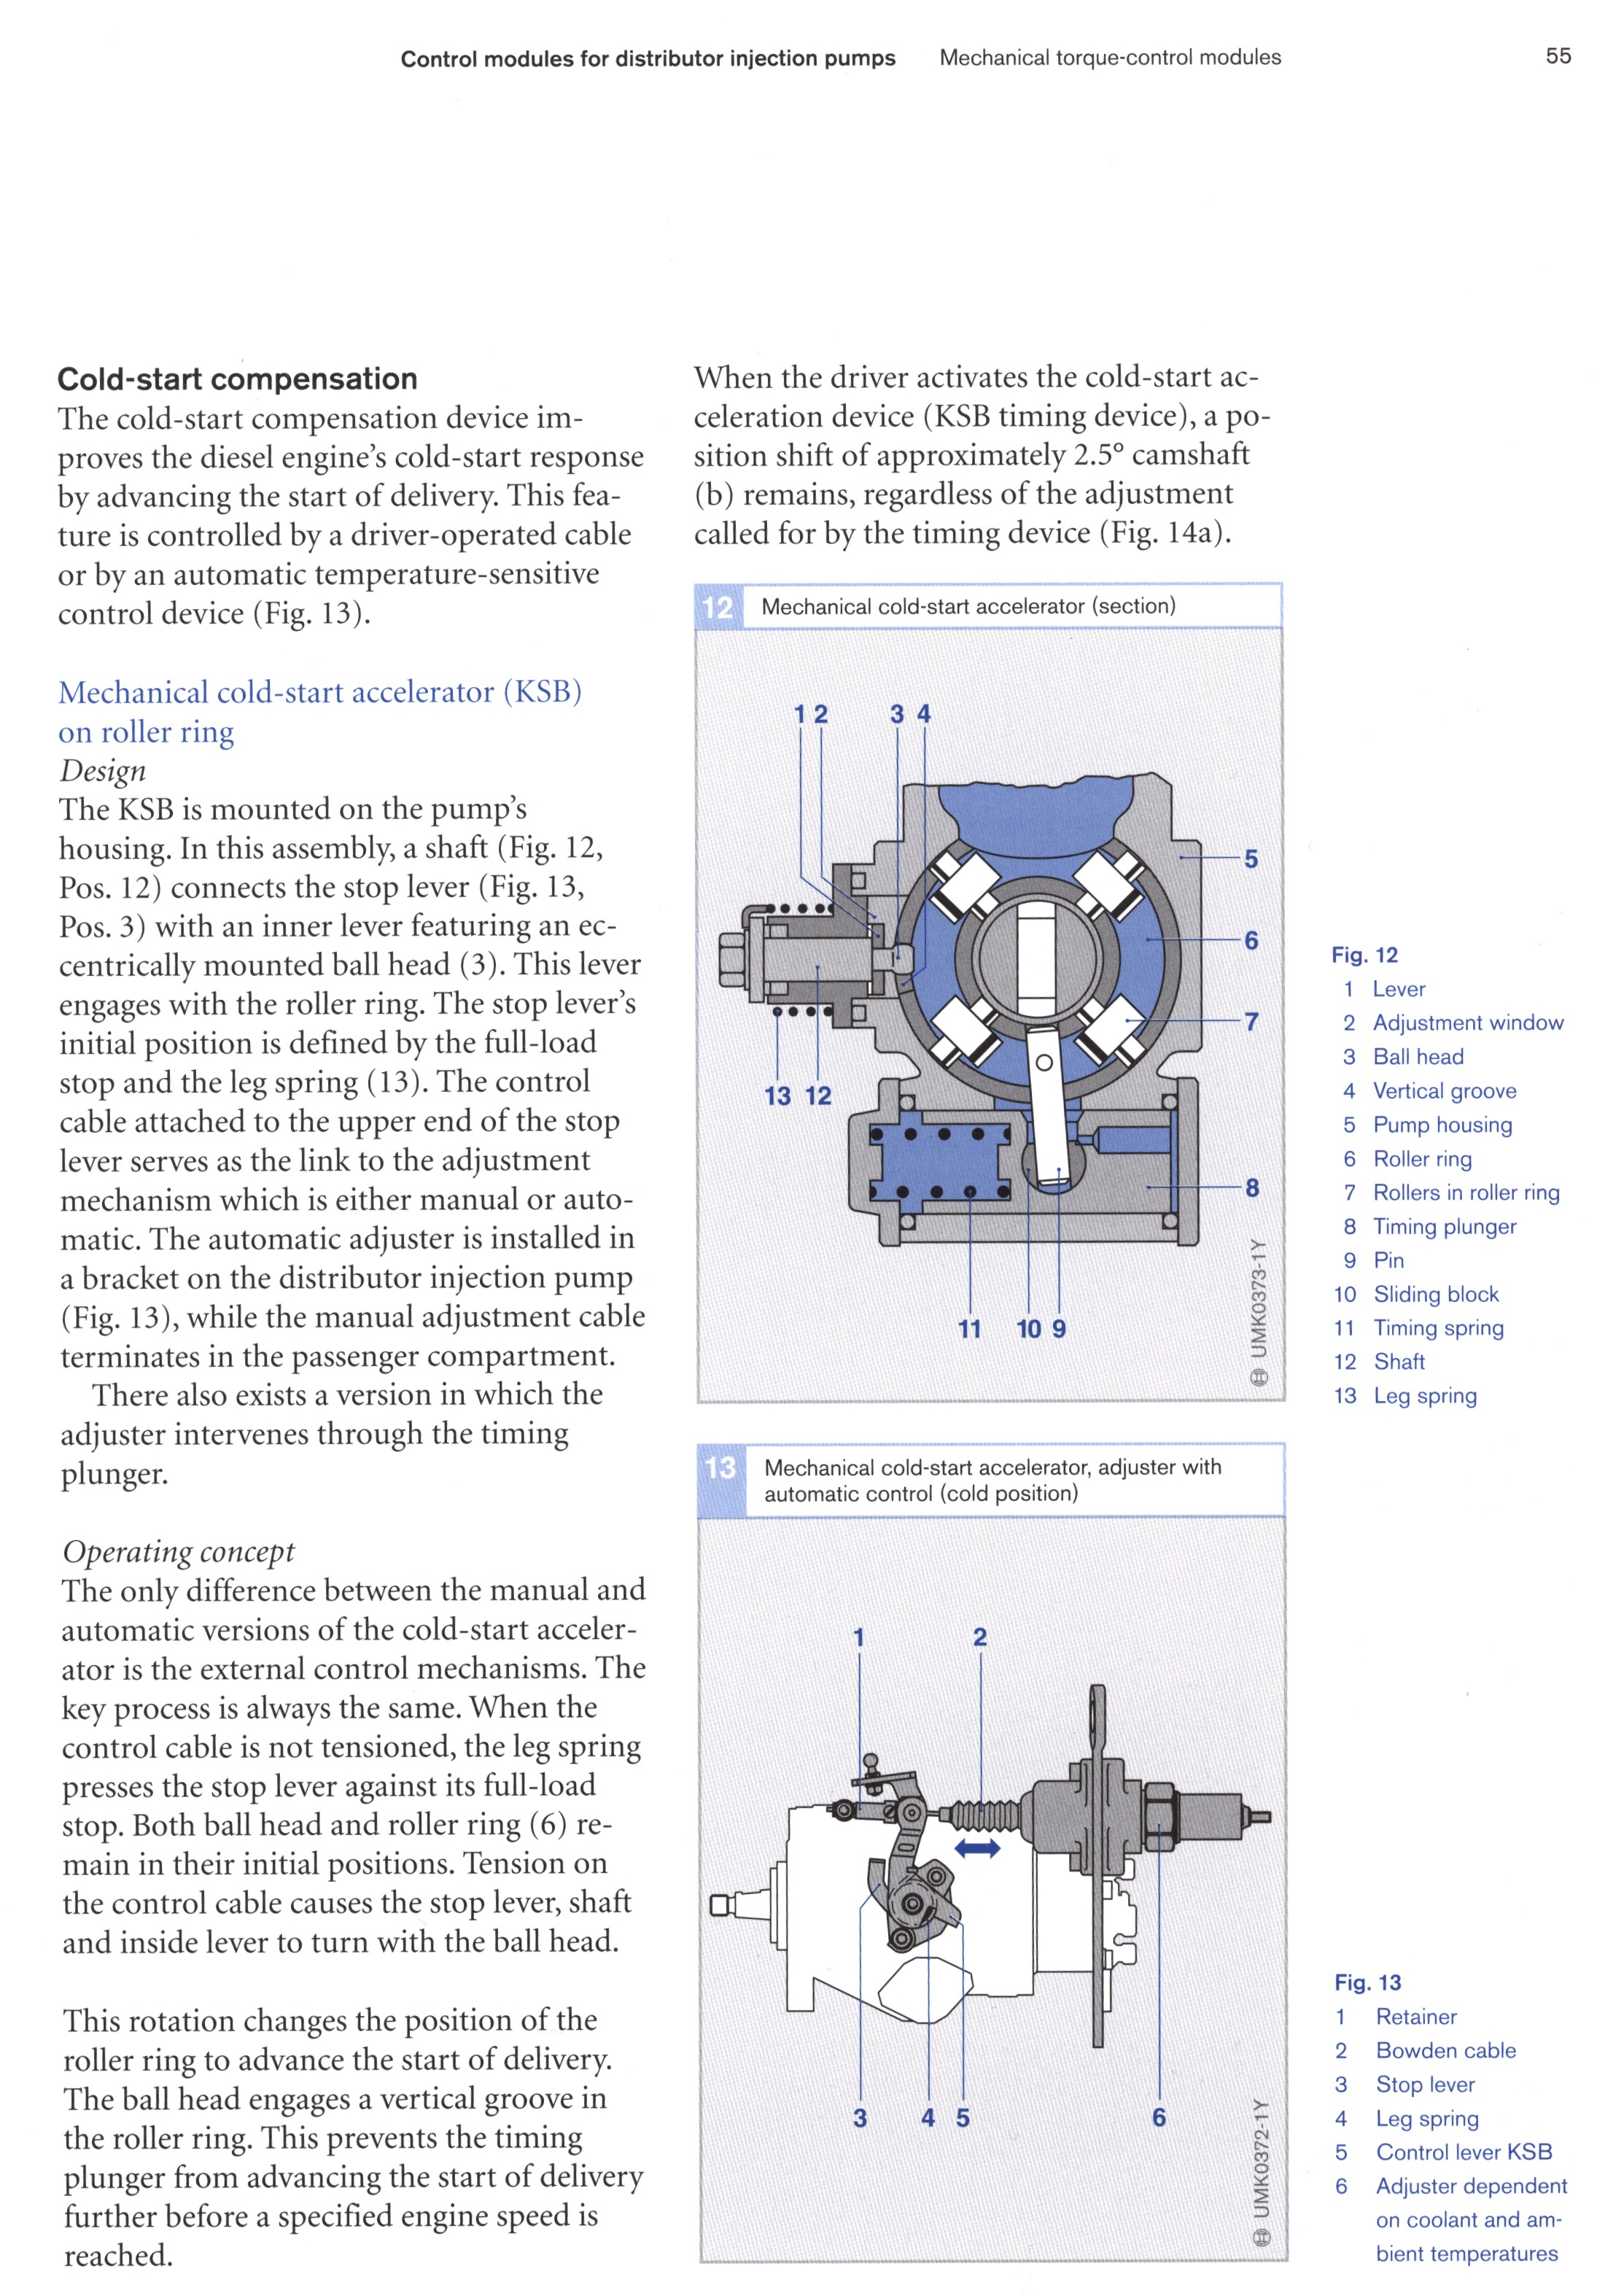 Bosch Distributor Type Diesel Fuel Injection Pumps Yellow Book wrote: